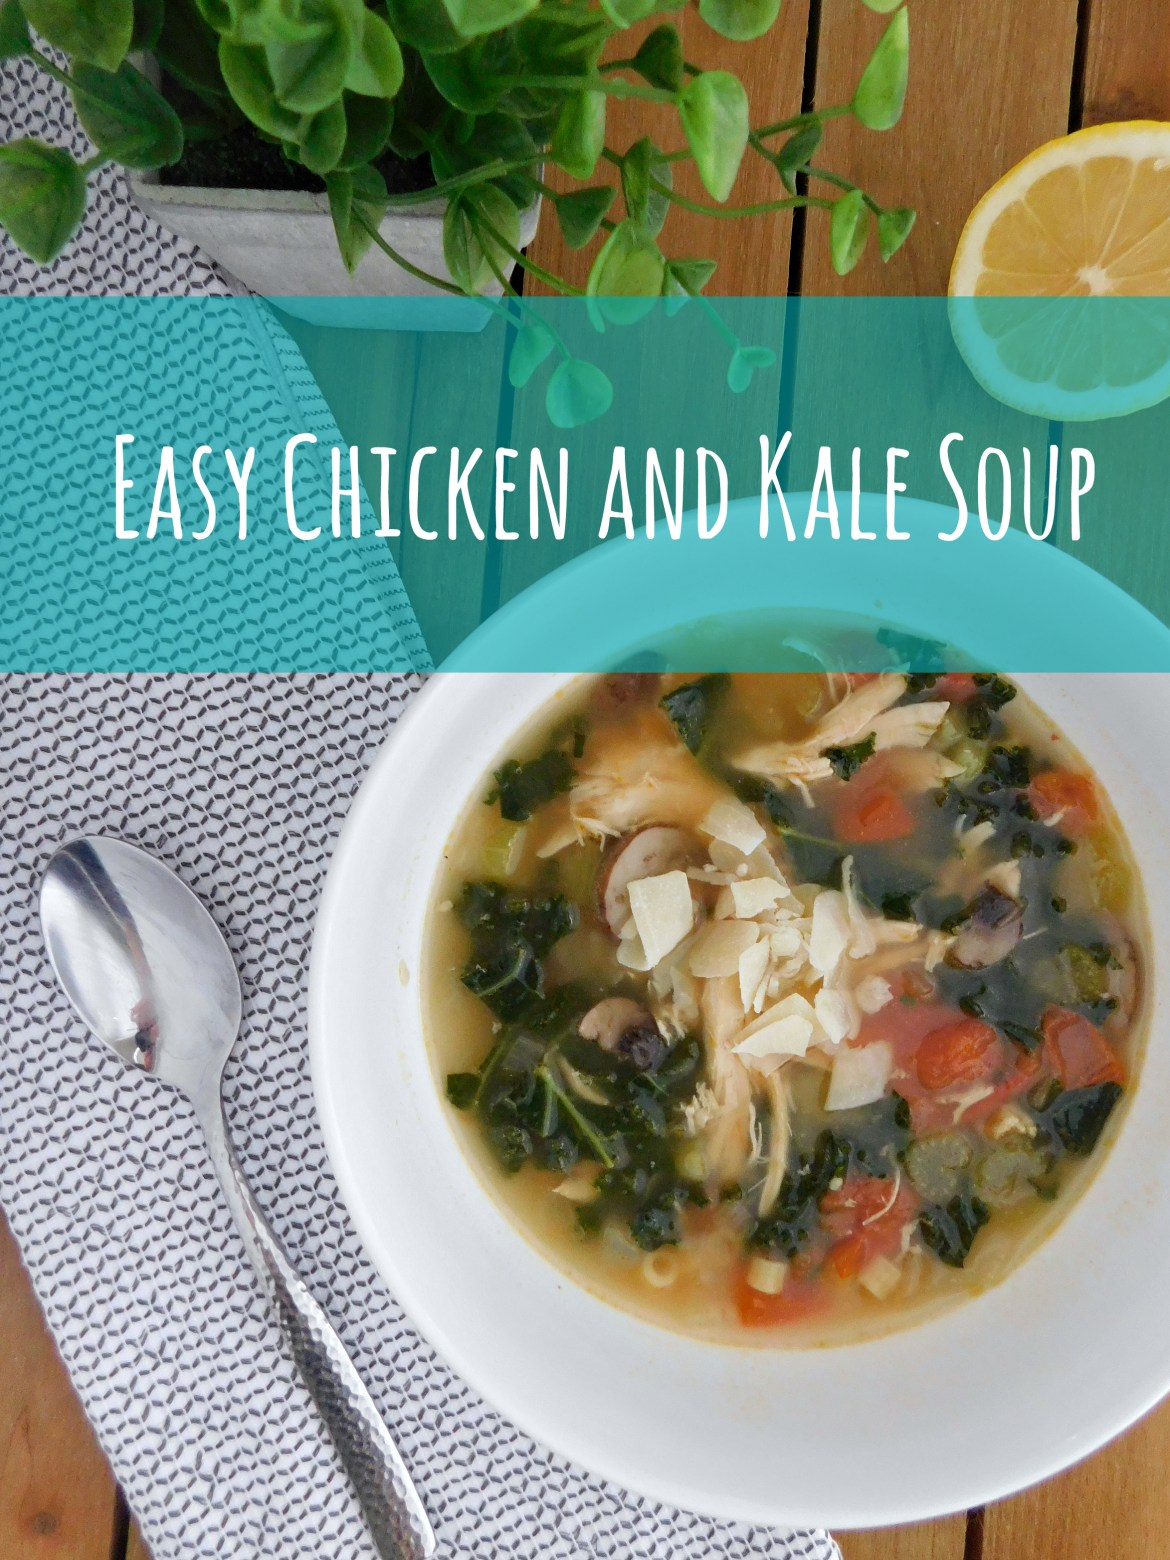 Easy Chicken and Kale Soup